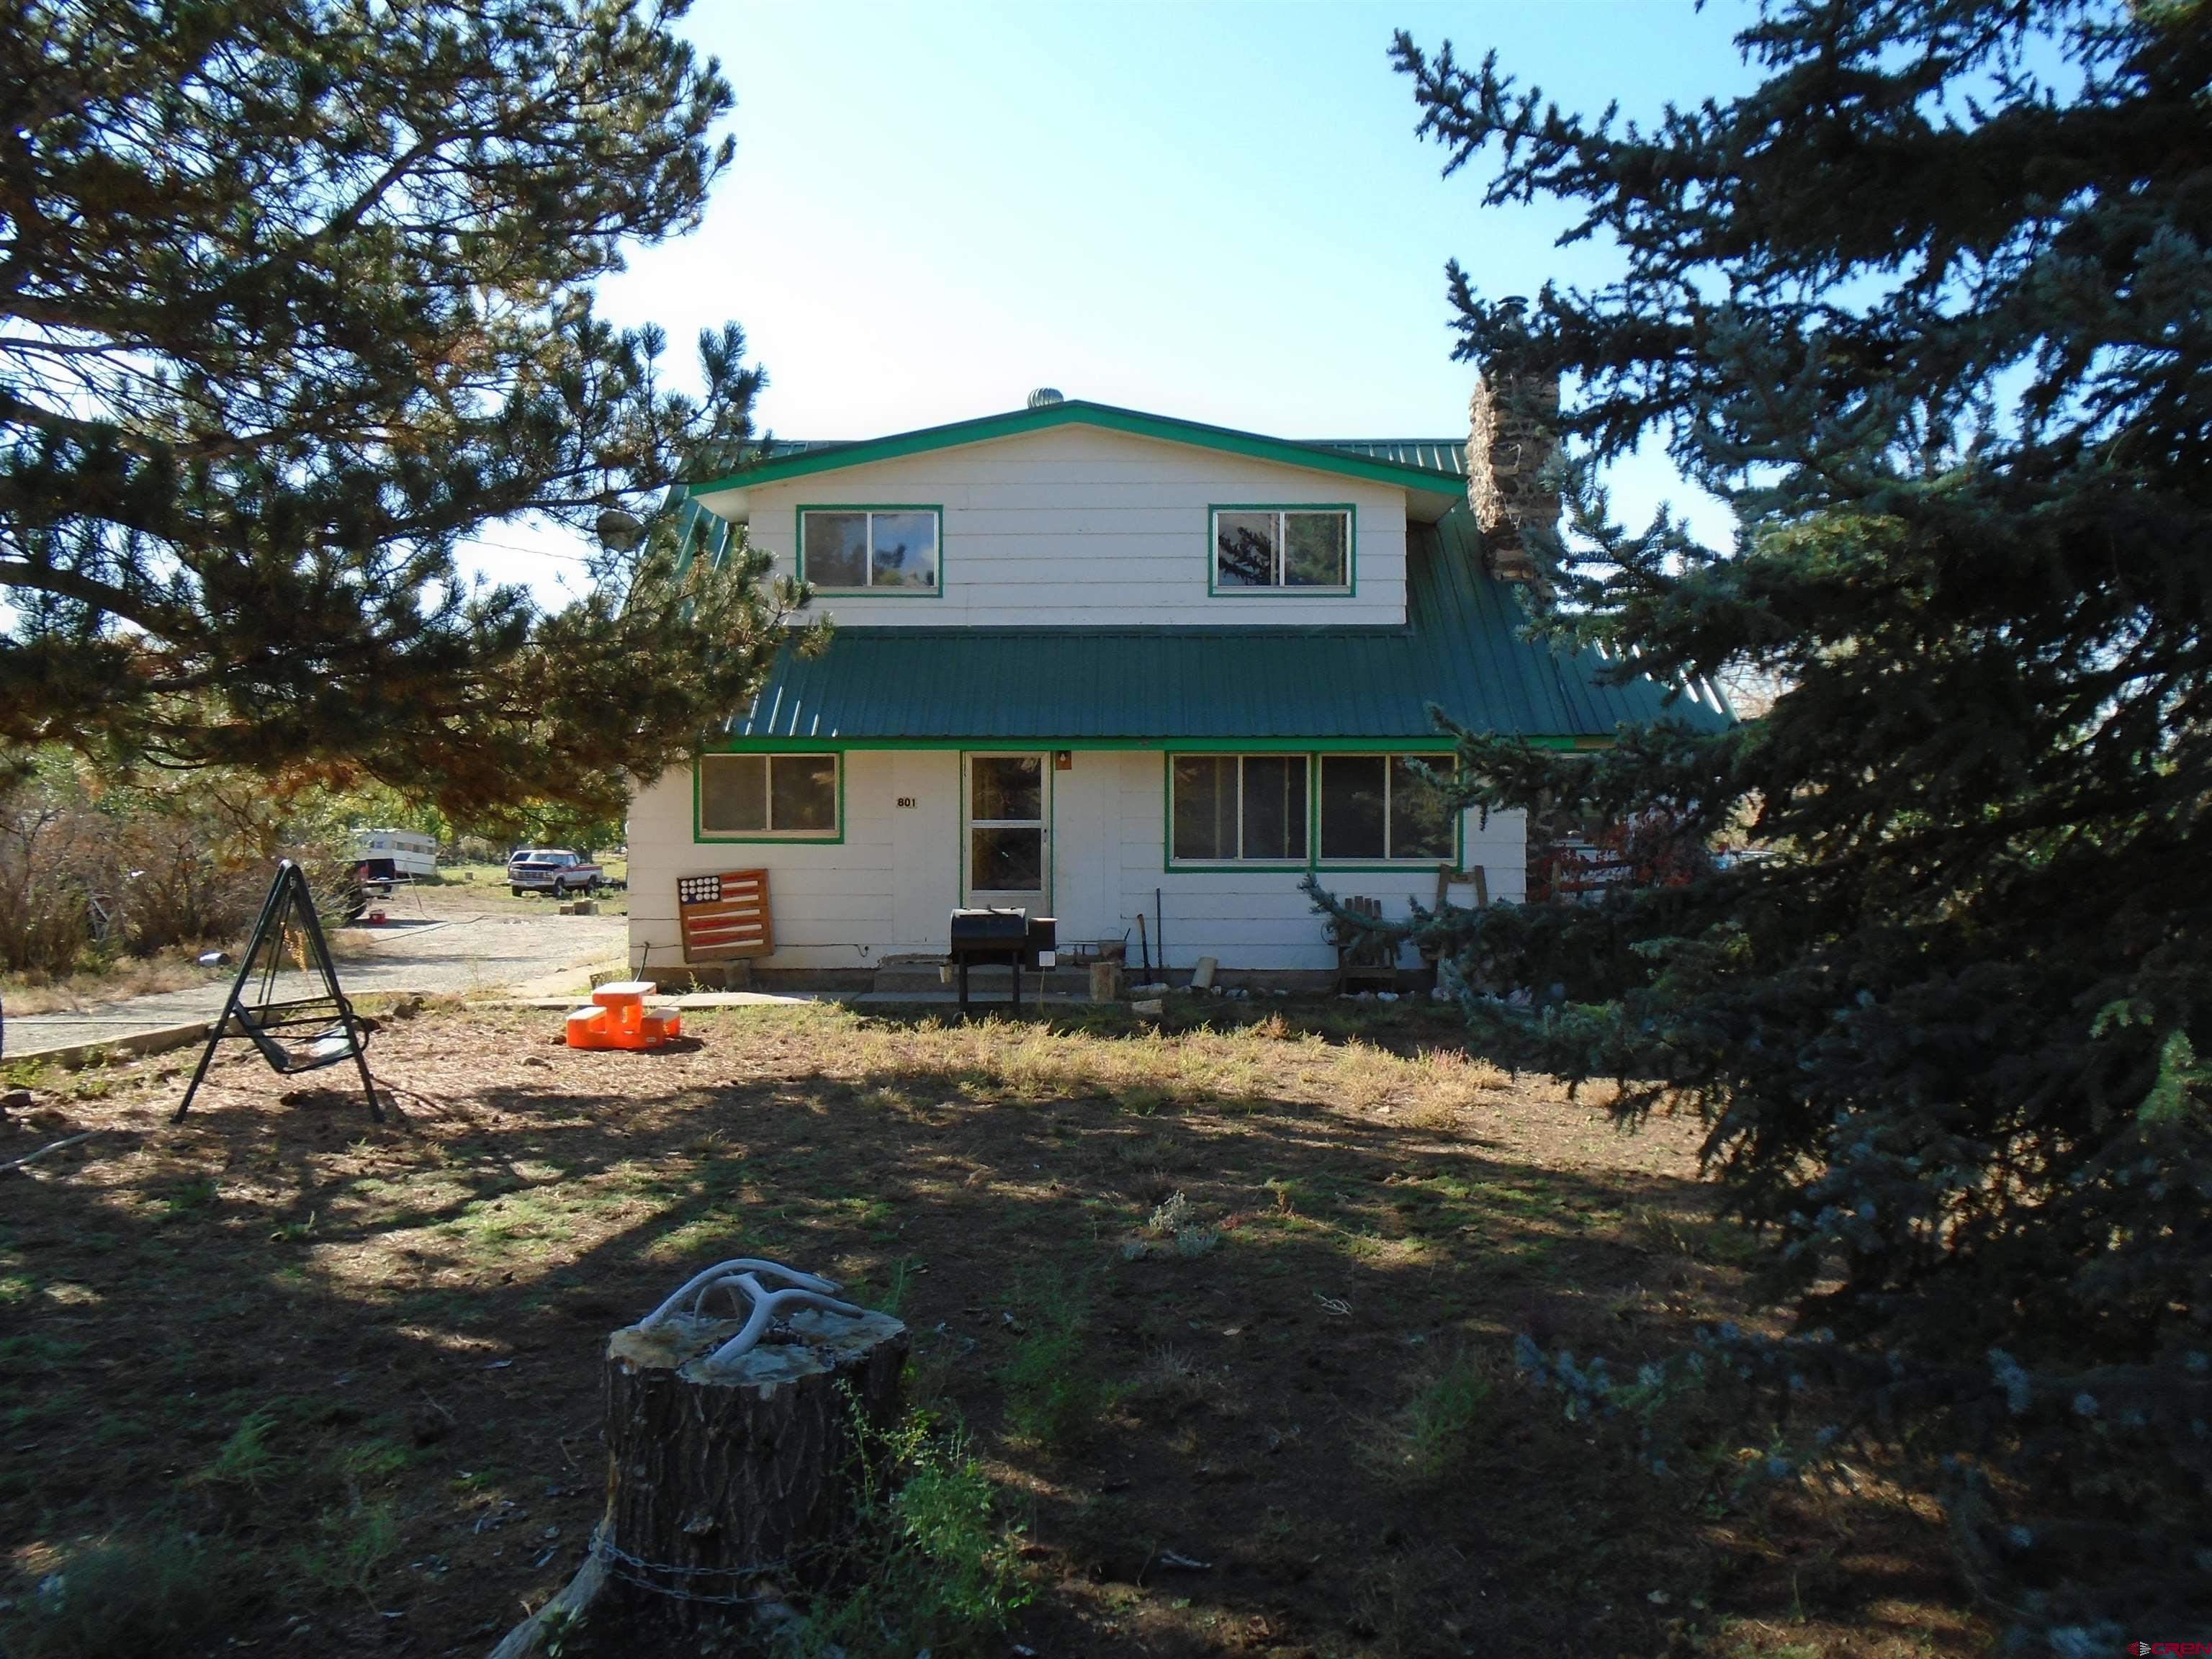 This is a Great Family Property.  The home has 4 bedrooms and 2 bathrooms with the master bedroom on the main Floor.  The Living Room has a beautiful stone pad and wall covering  on which there is a wood stove which can heat the entire home.  The kitchen has lots of light from windows looking toward to the Grand Mesa.  There are several sheds and a one car garage that provide storage and shelter for animals.  There is plenty of room for animals, 4-H projects, etc. The Property is close to Town and services. This property is showing a little wear and could use some TLC.  The 3 acre property has 2.7% interest in the Coldwater Ditch  which has a #29 decree for a total of 1.62 cfs plus 10 shares of Leon Lake Stock.  All Livestock panels are excluded